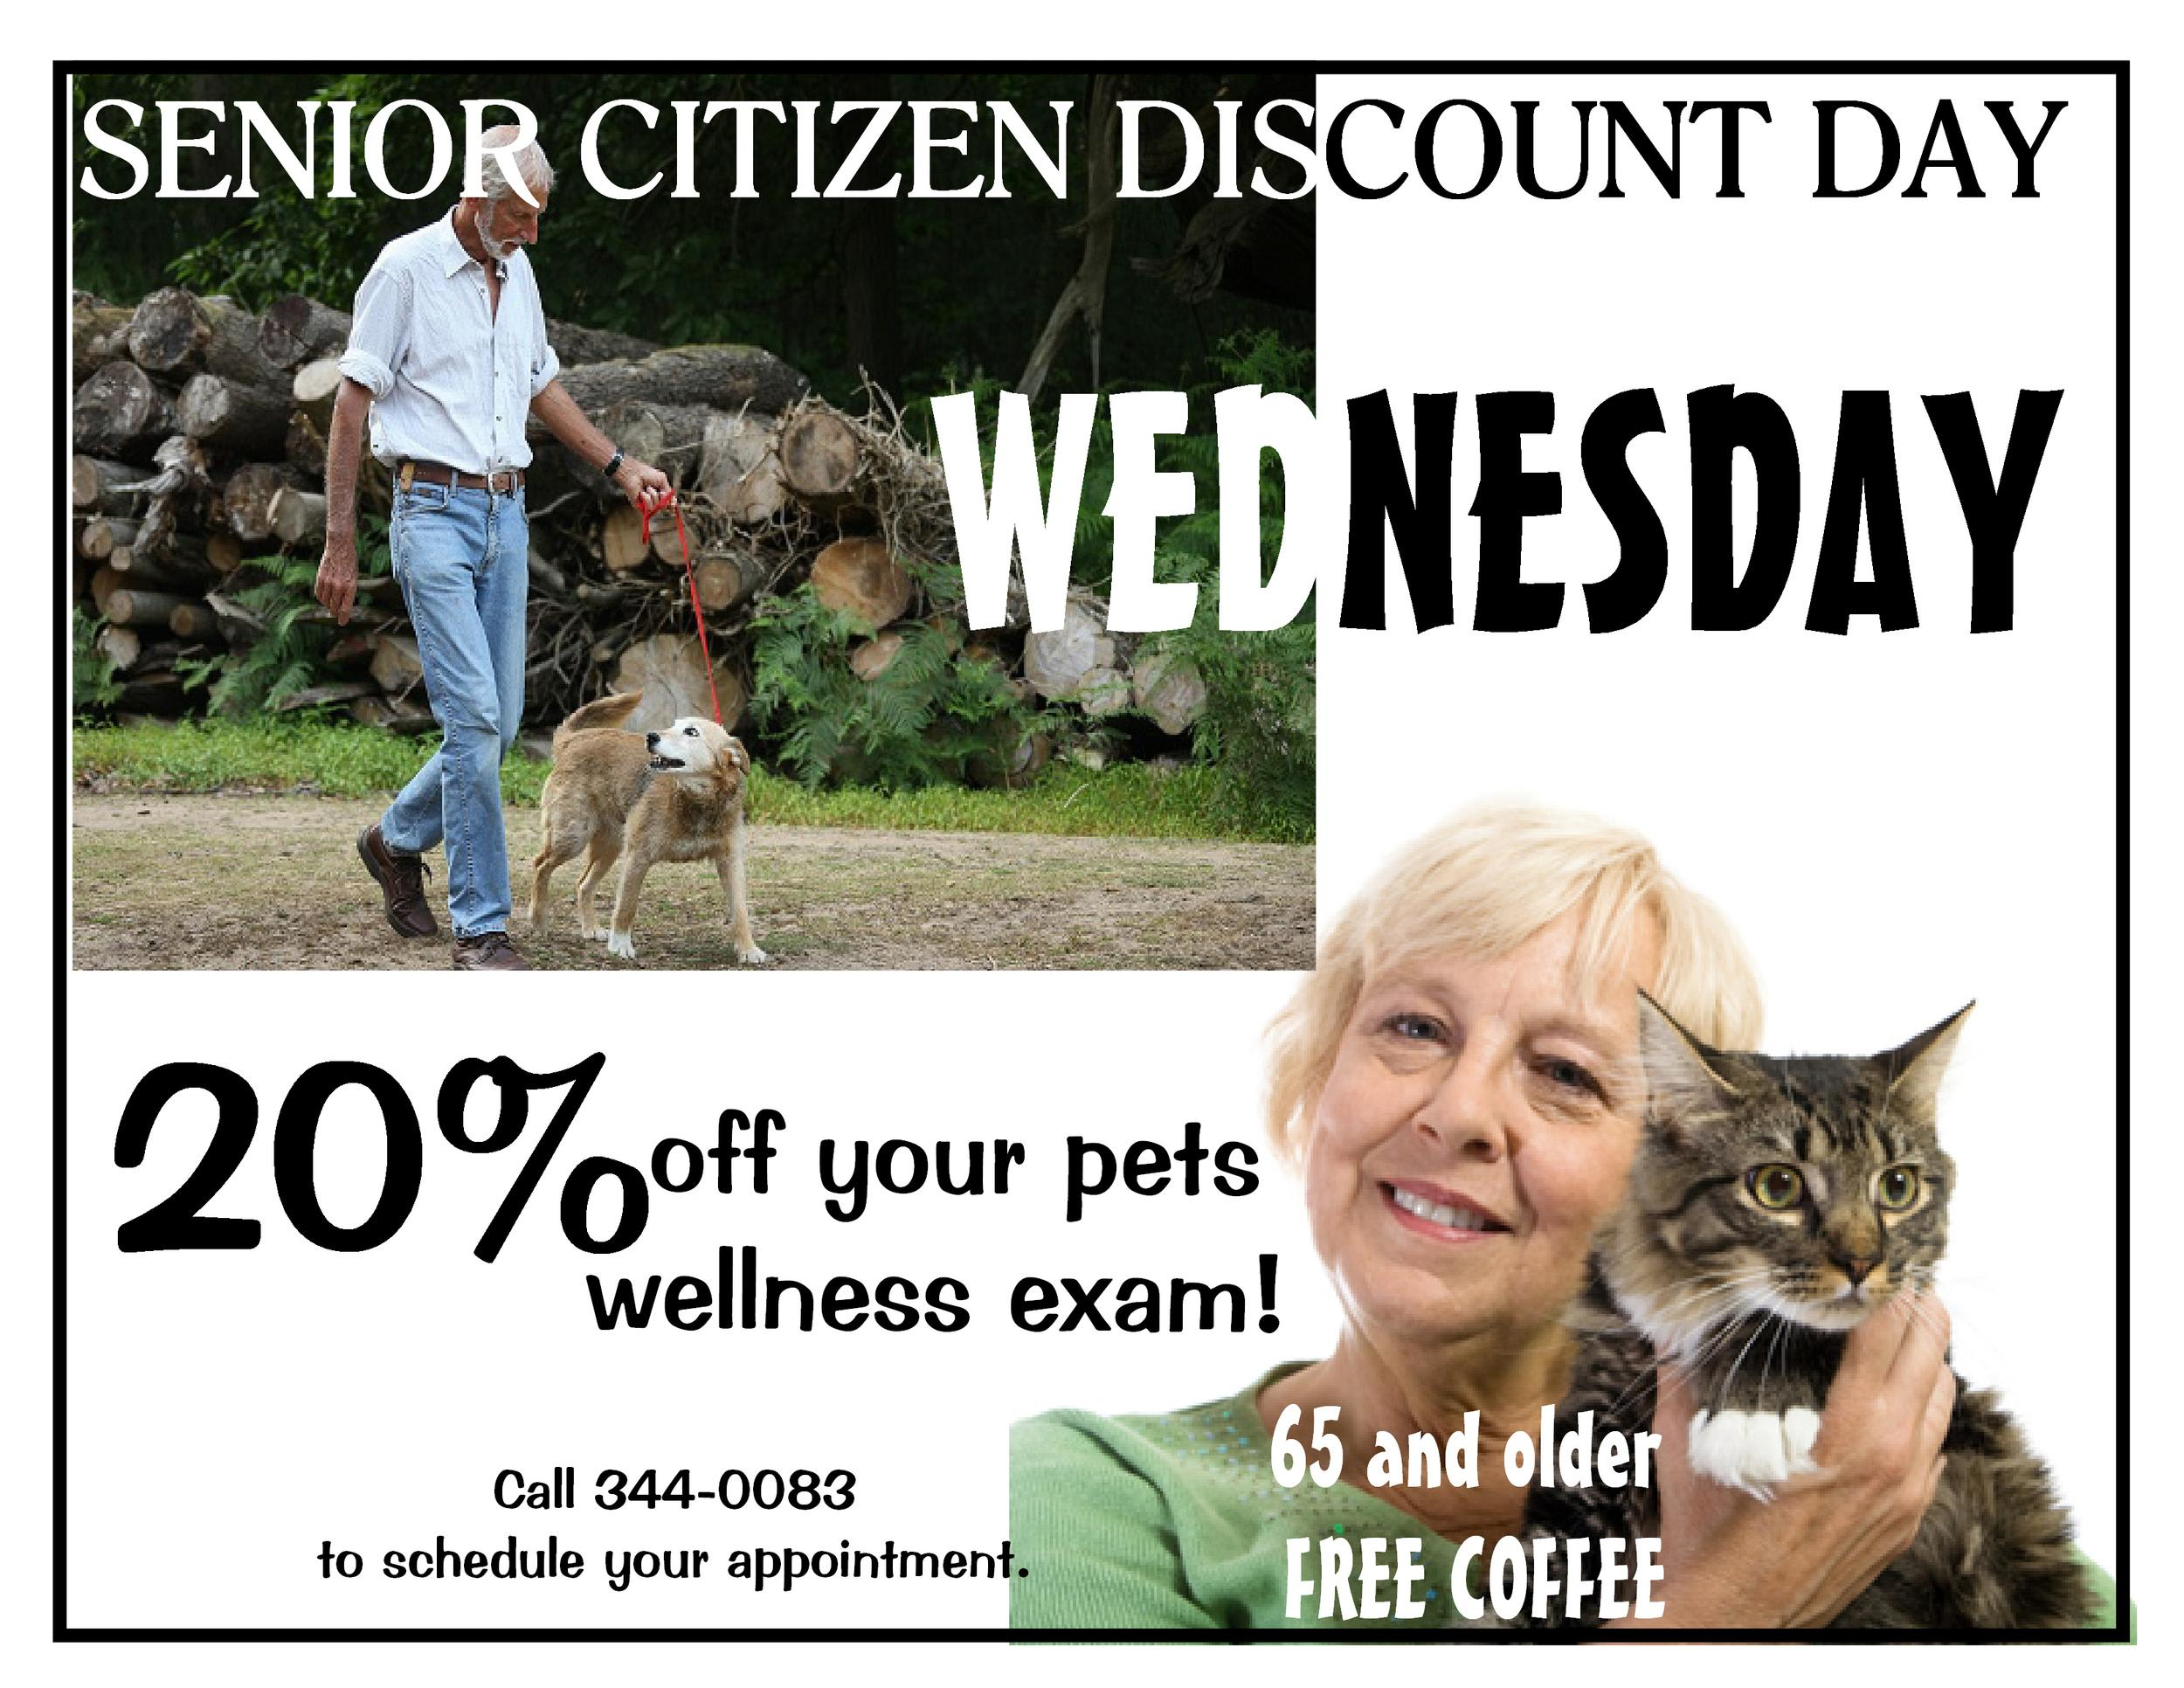 Special offer at Northgate Small Animal Hospital